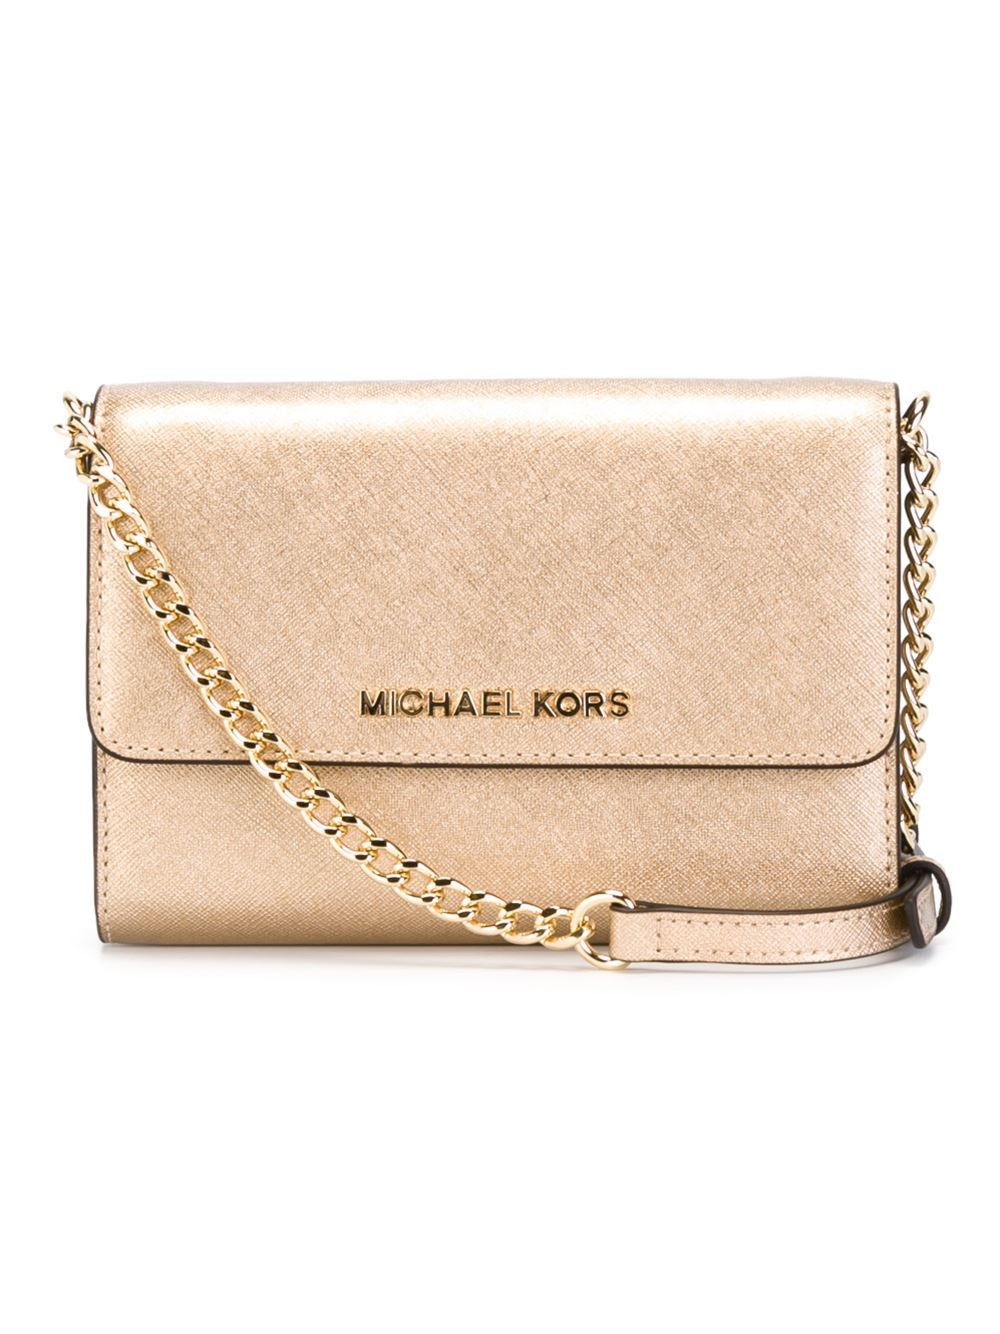 michael michael kors 39 jet set travel 39 phone crossbody bag. Black Bedroom Furniture Sets. Home Design Ideas